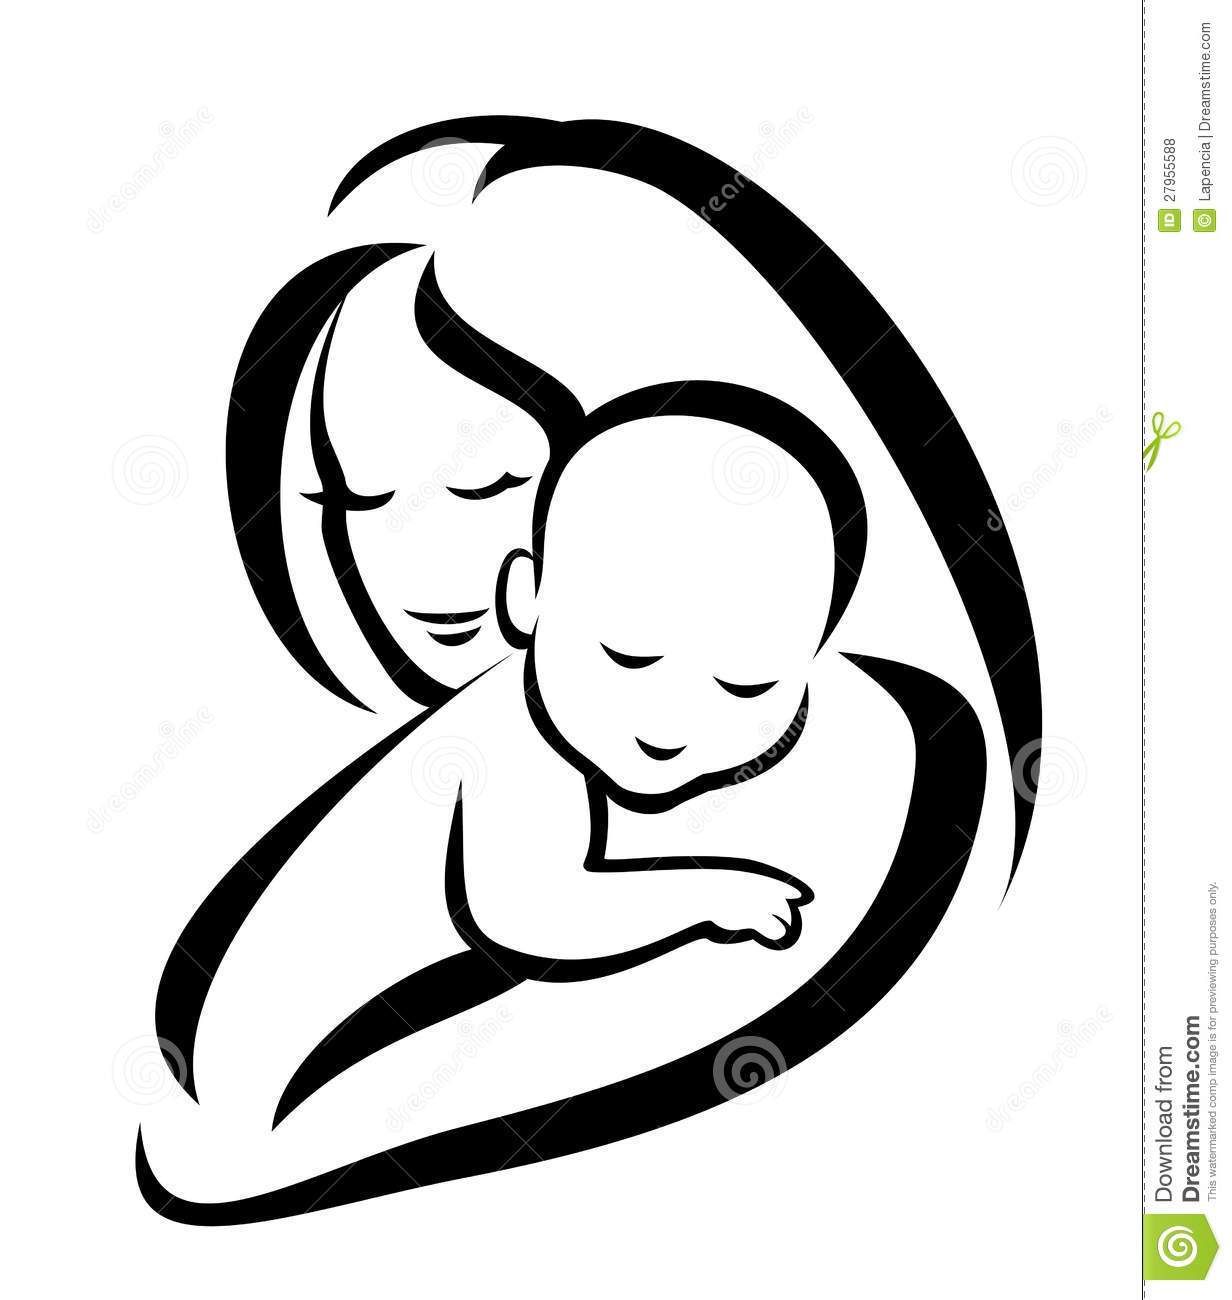 Free clipart mother and child 3 » Clipart Portal.